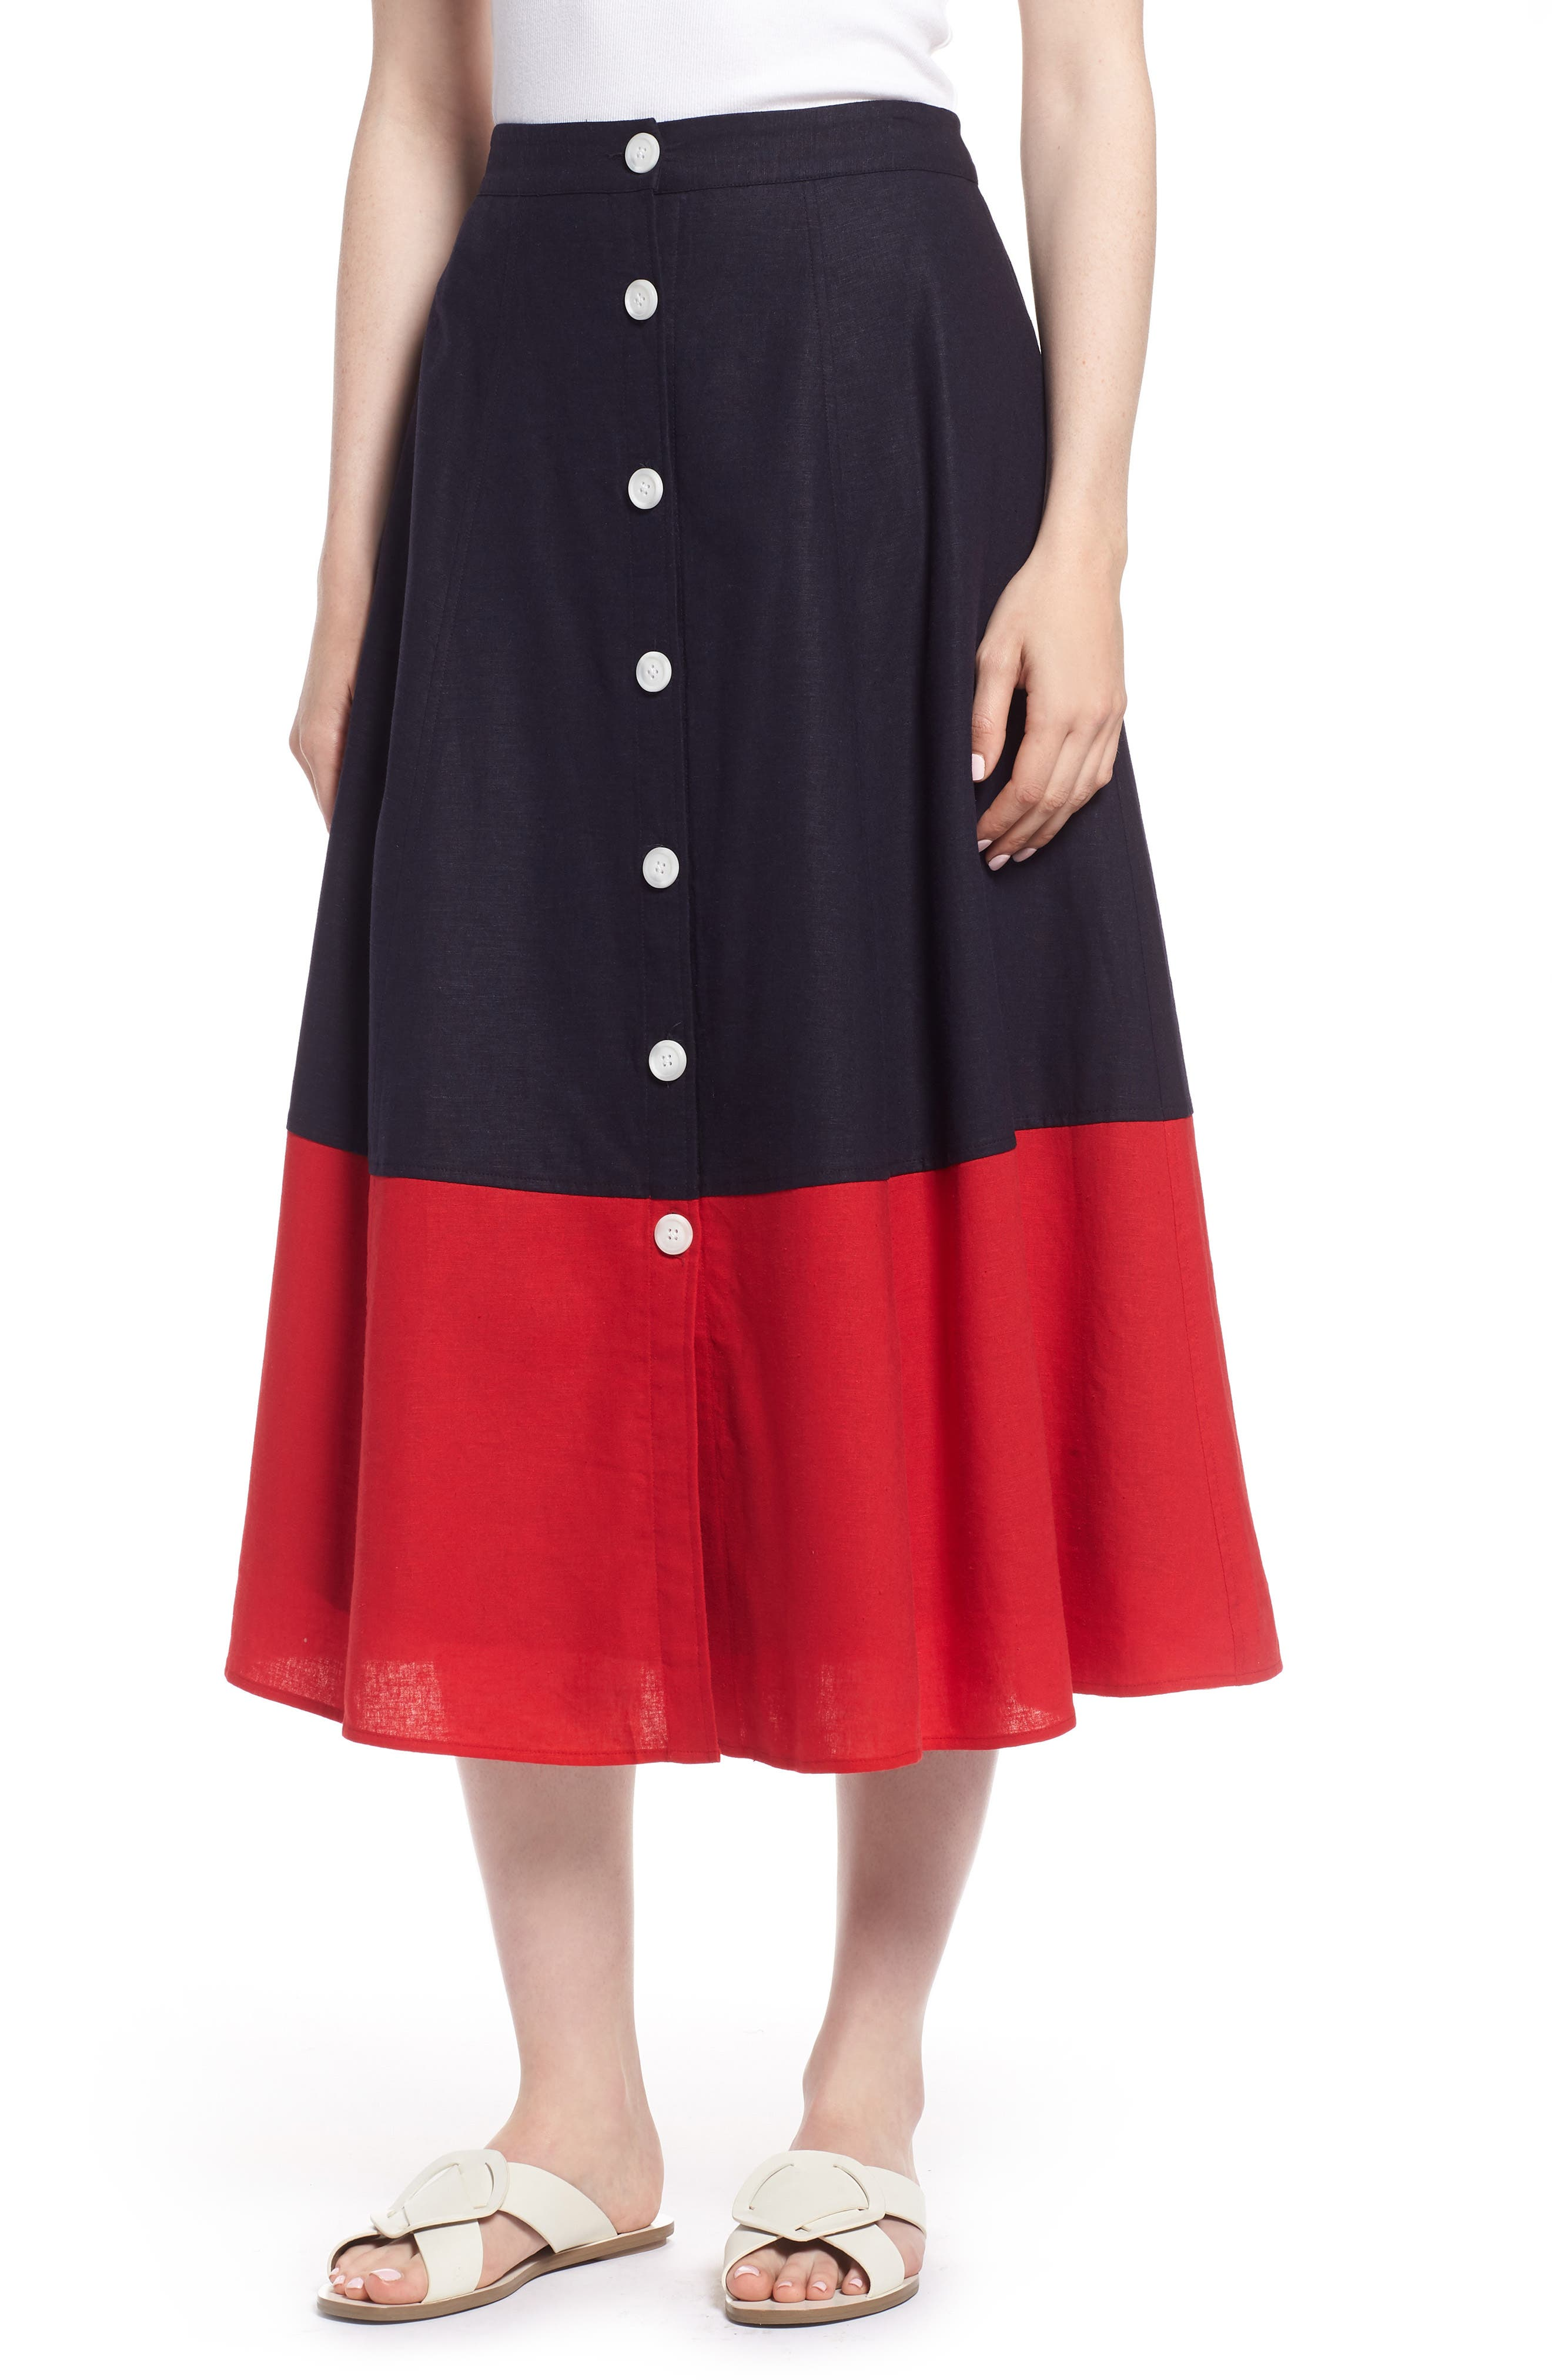 Colorblock Linen Blend Skirt,                             Main thumbnail 1, color,                             Navy- Red Colorblock